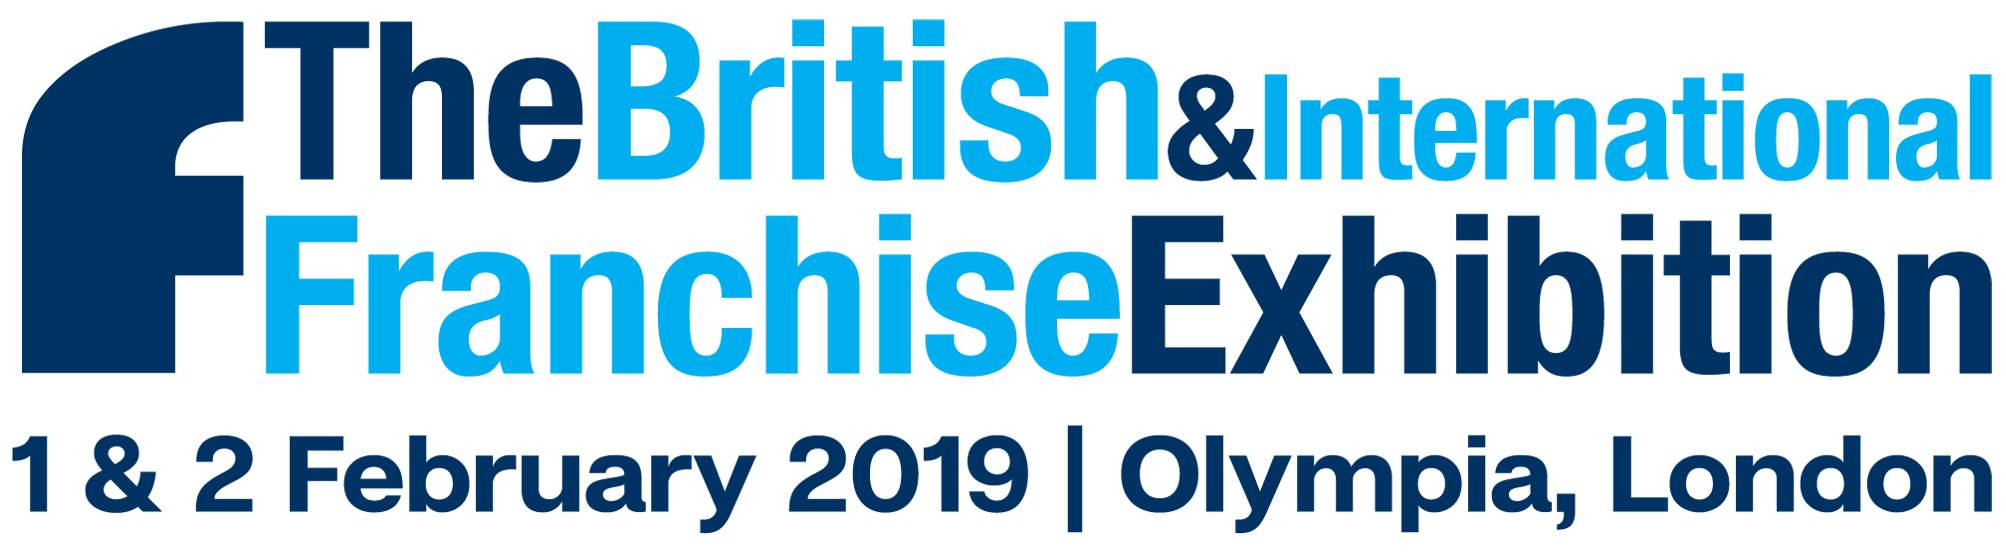 The British & International Franchise Exhibition 2019